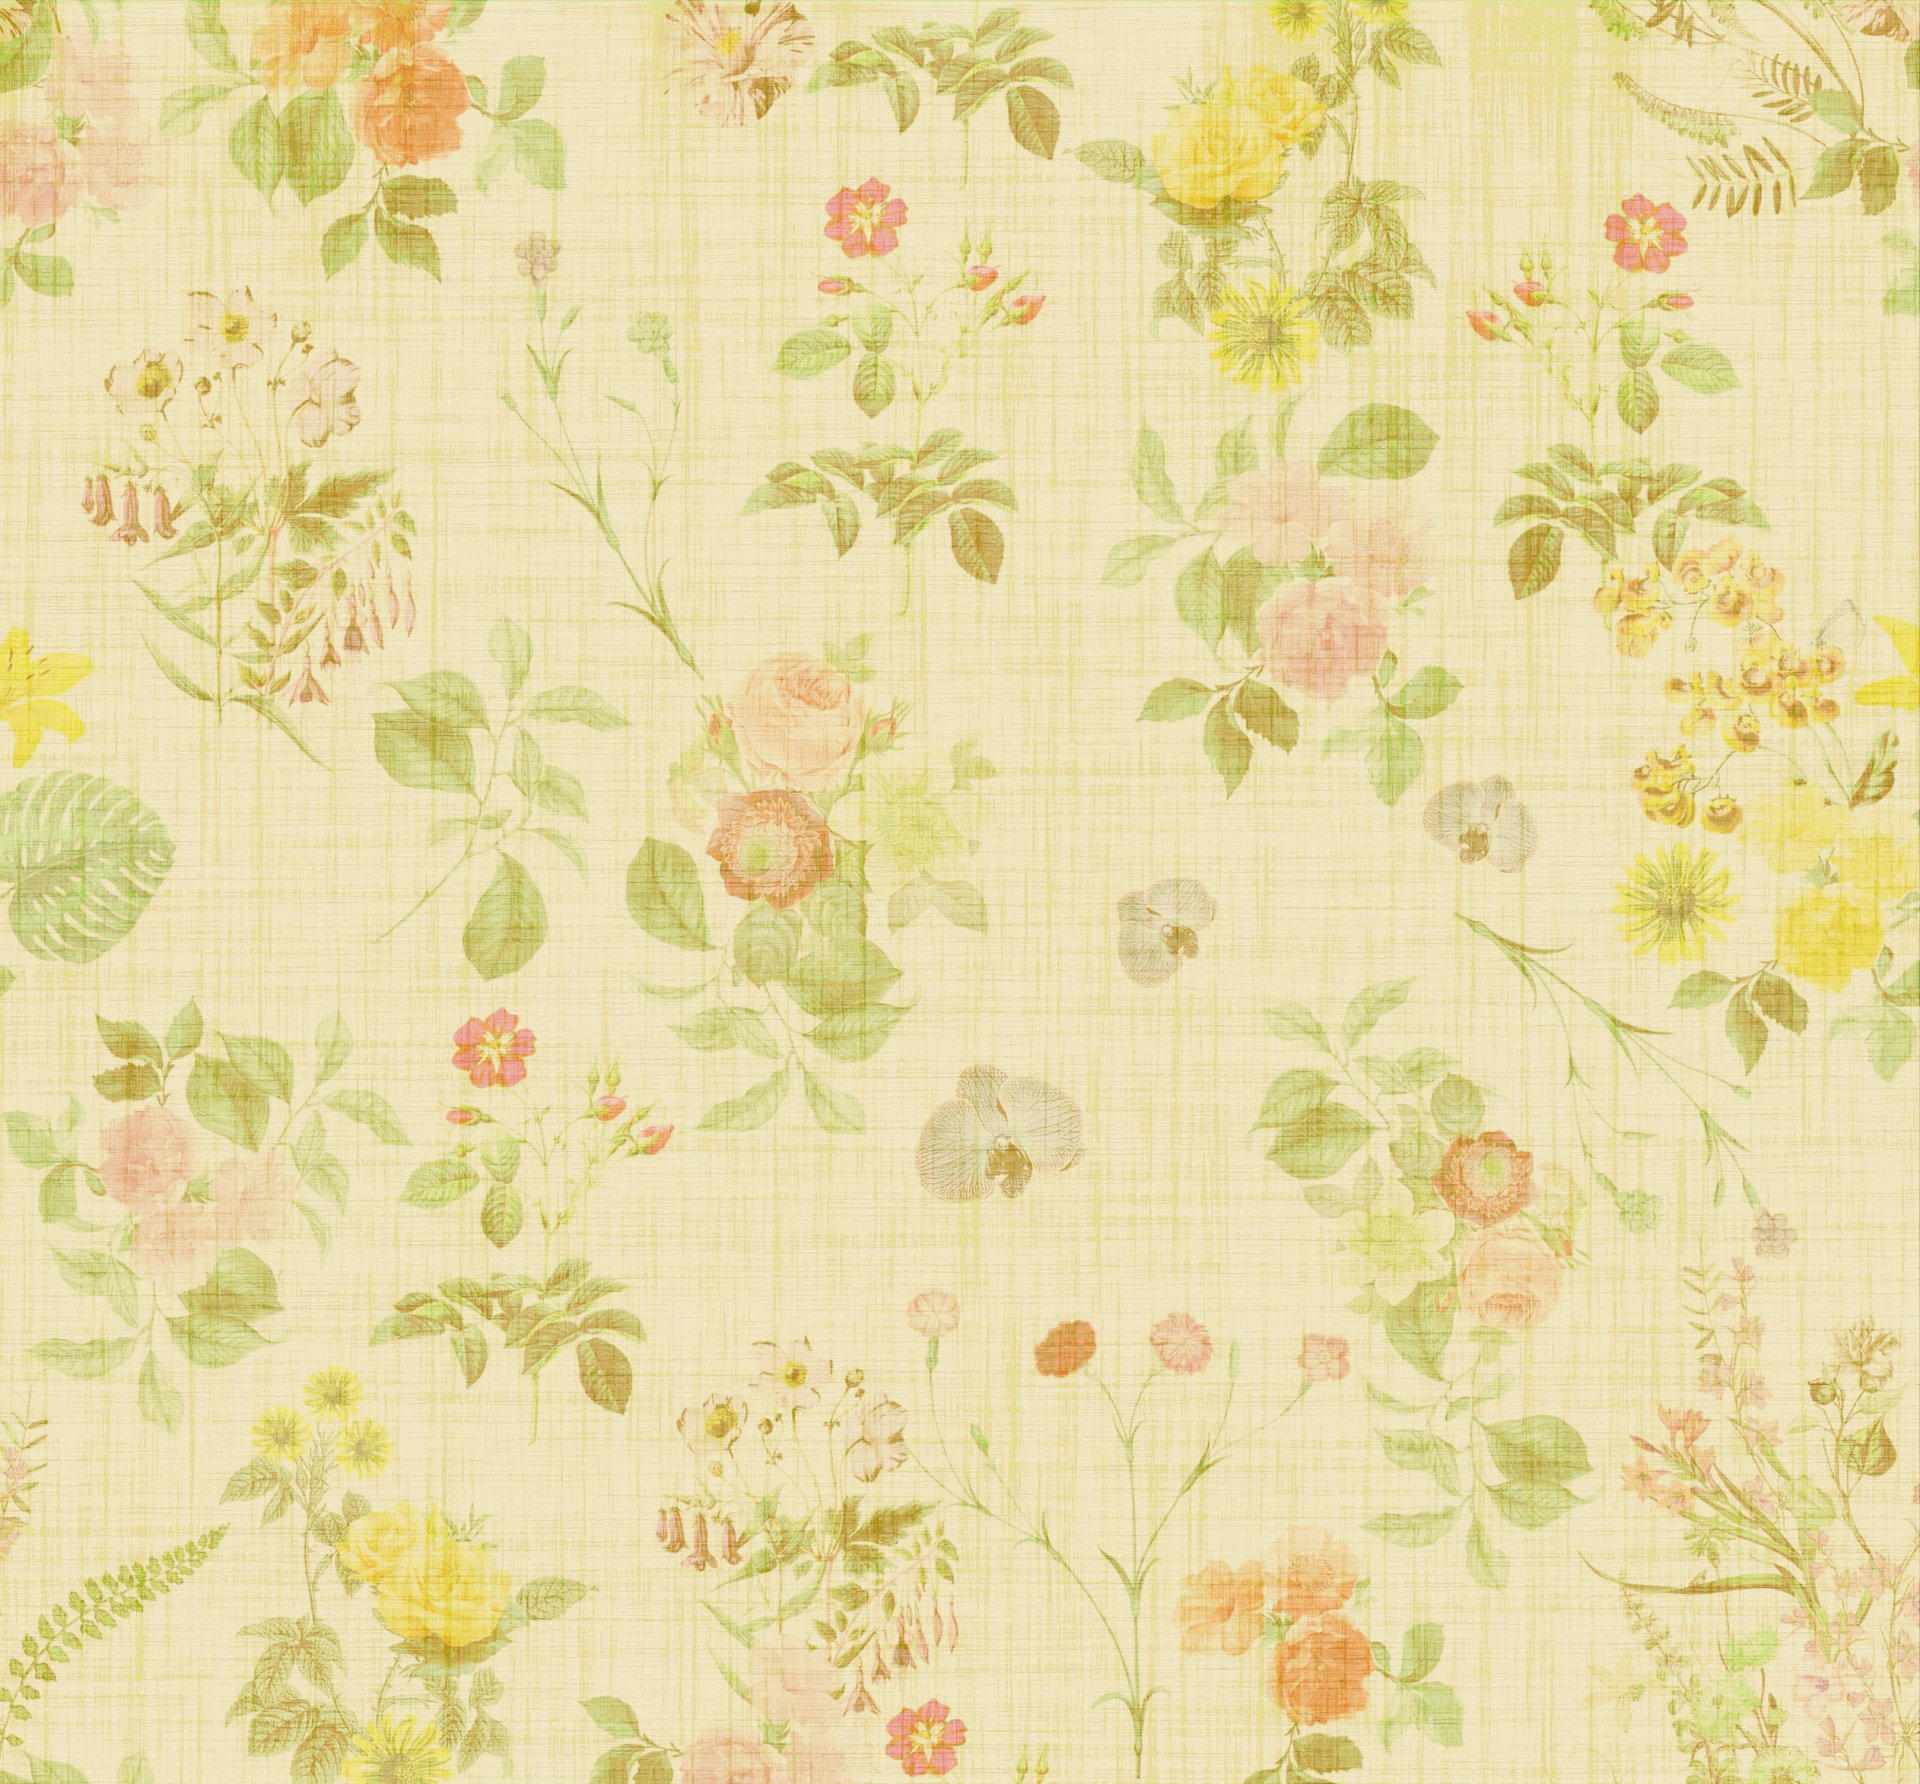 Floral Flowers Wallpaper Paper Vintage Free Image From Needpix Com